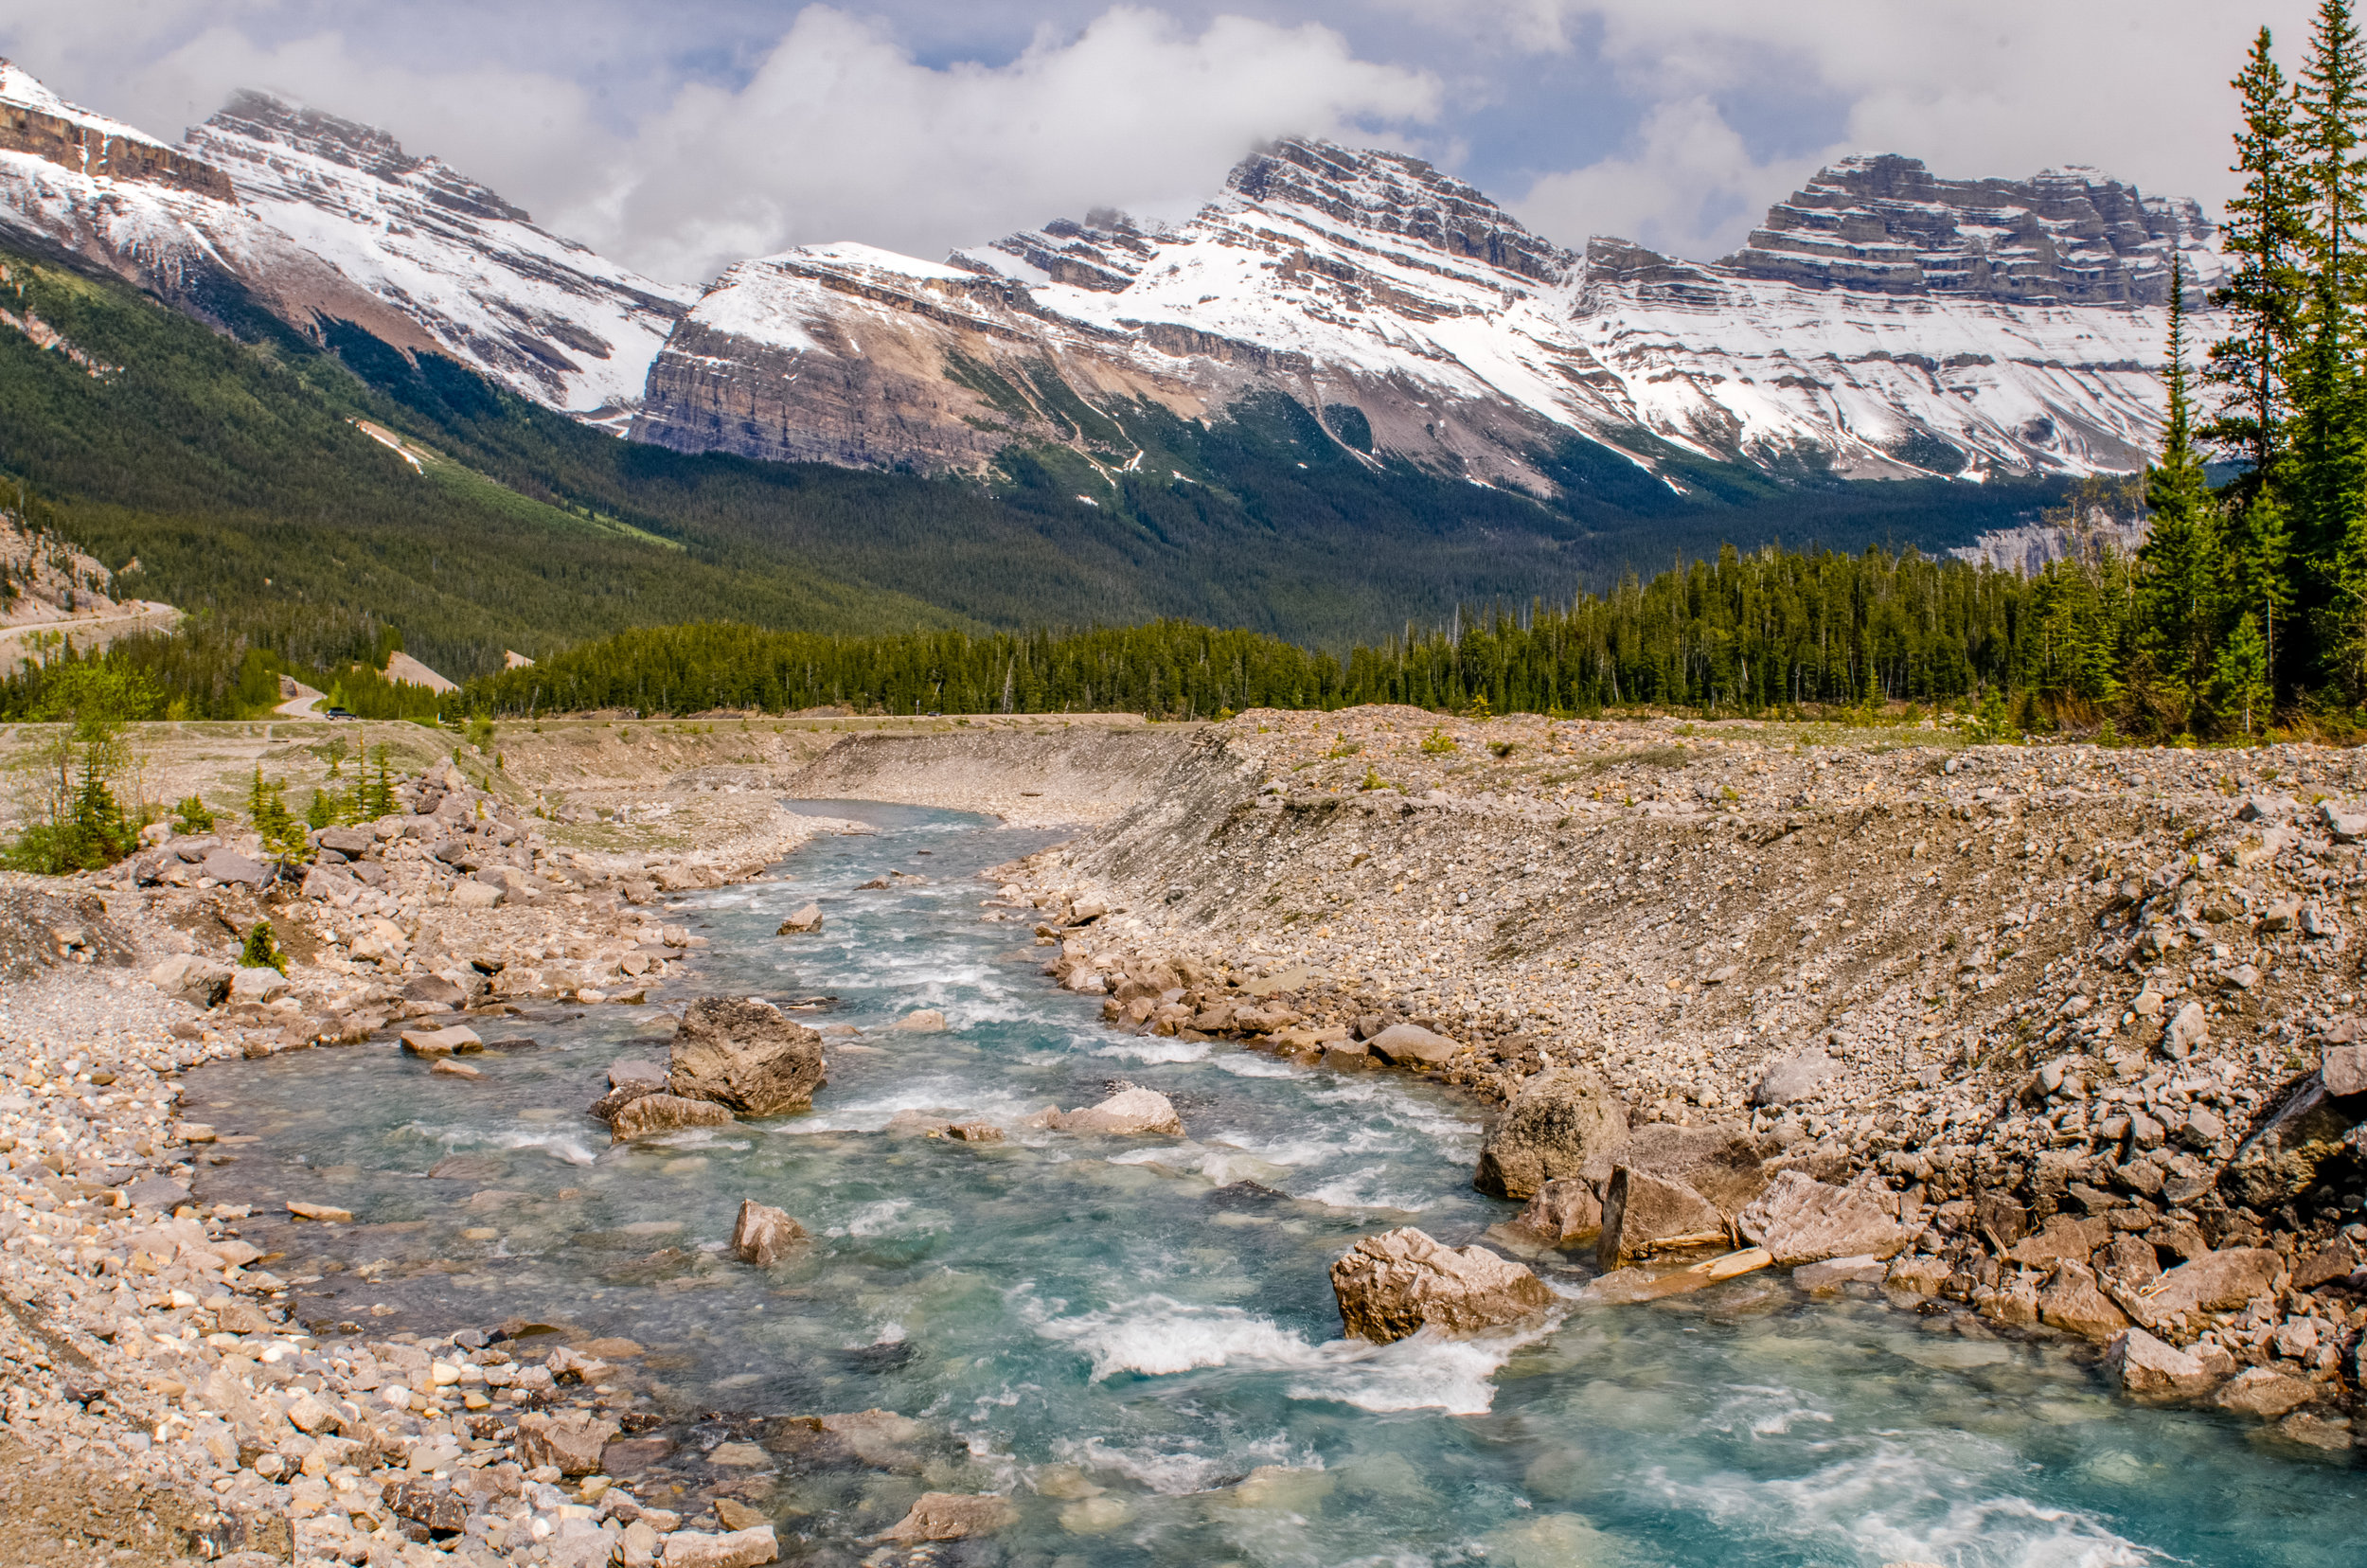 More spectacular views from an unmarked gravel lot along the Icefields Parkway